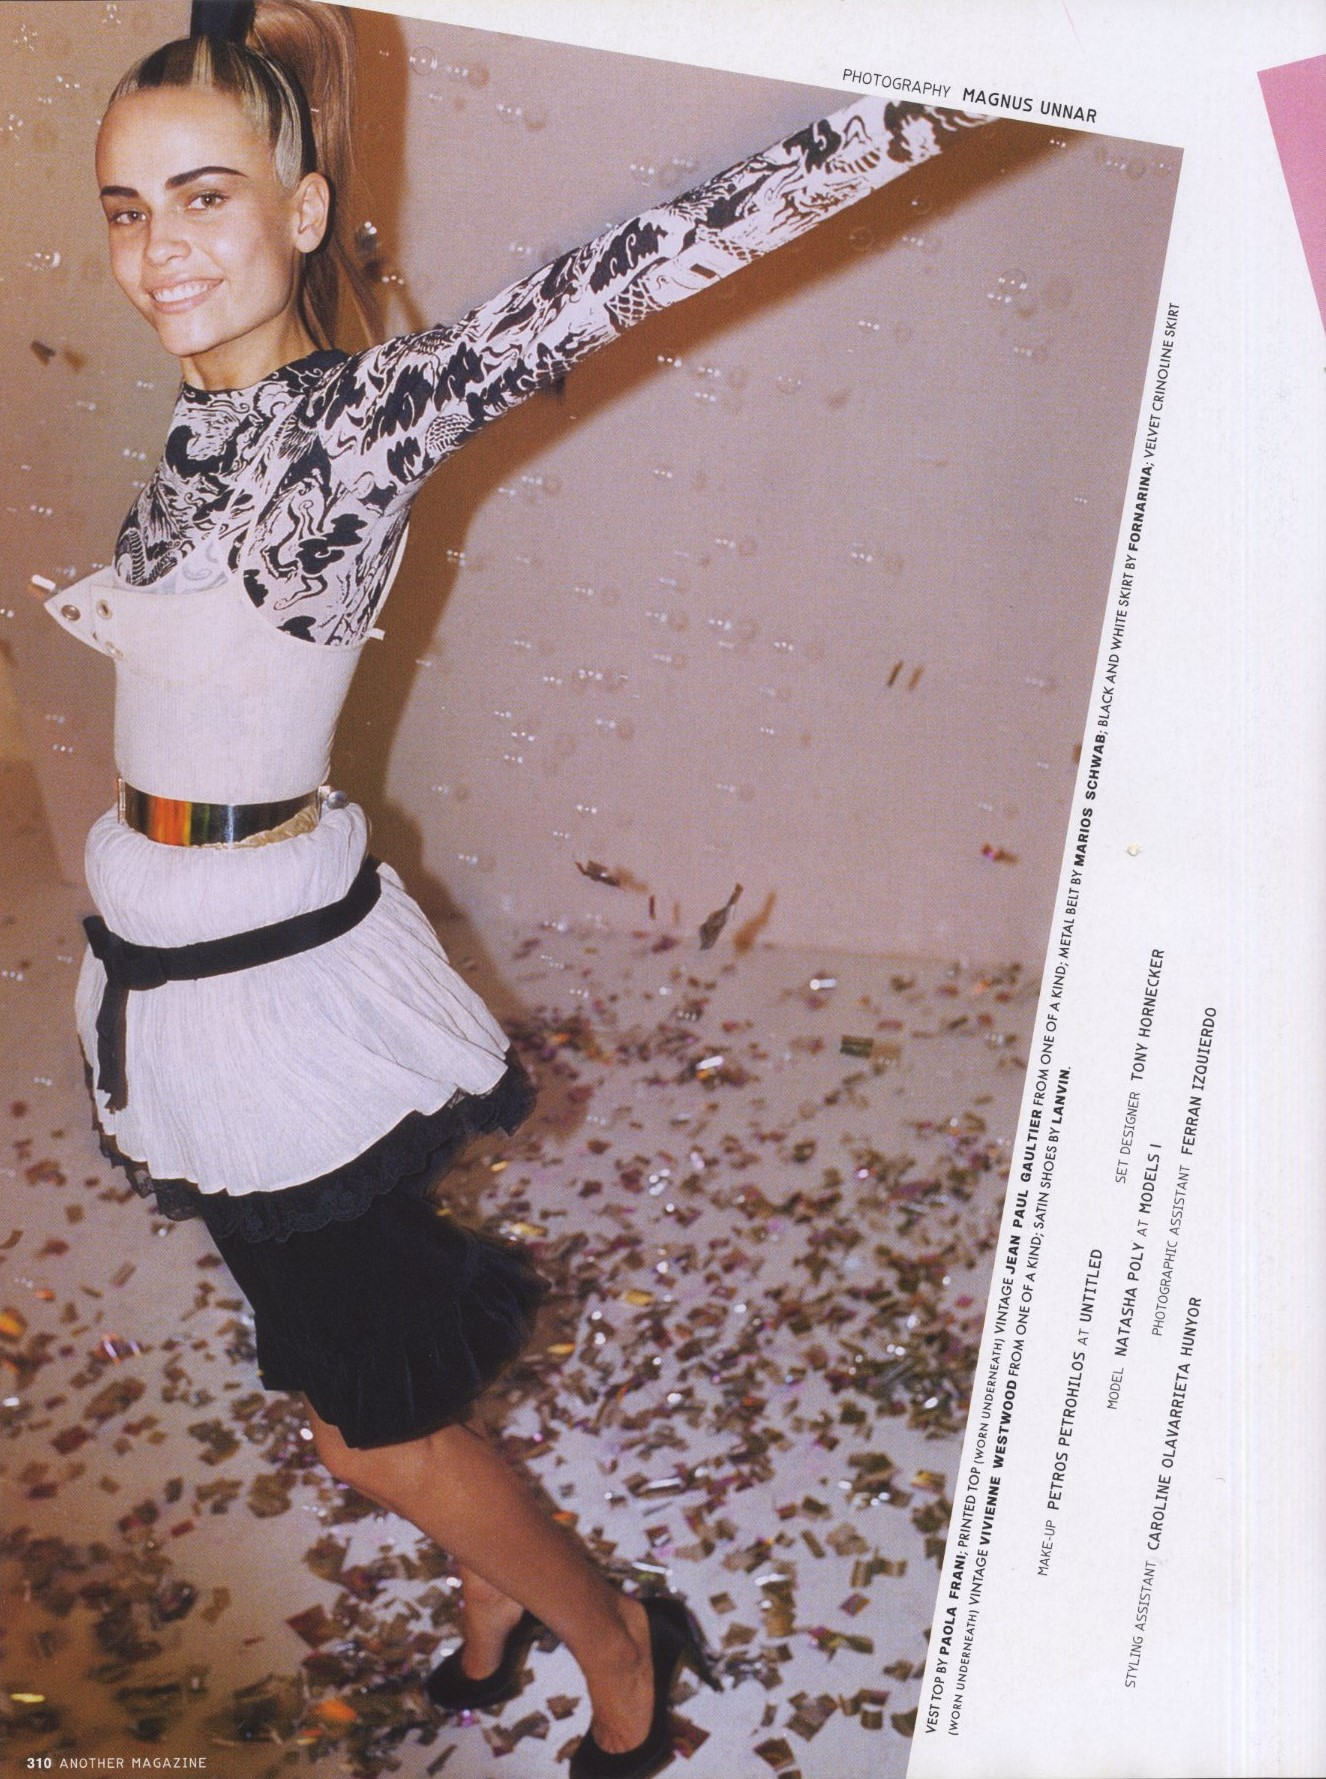 natasha poly photography magnus unnar styling tal brener another magazine ss 2006 1